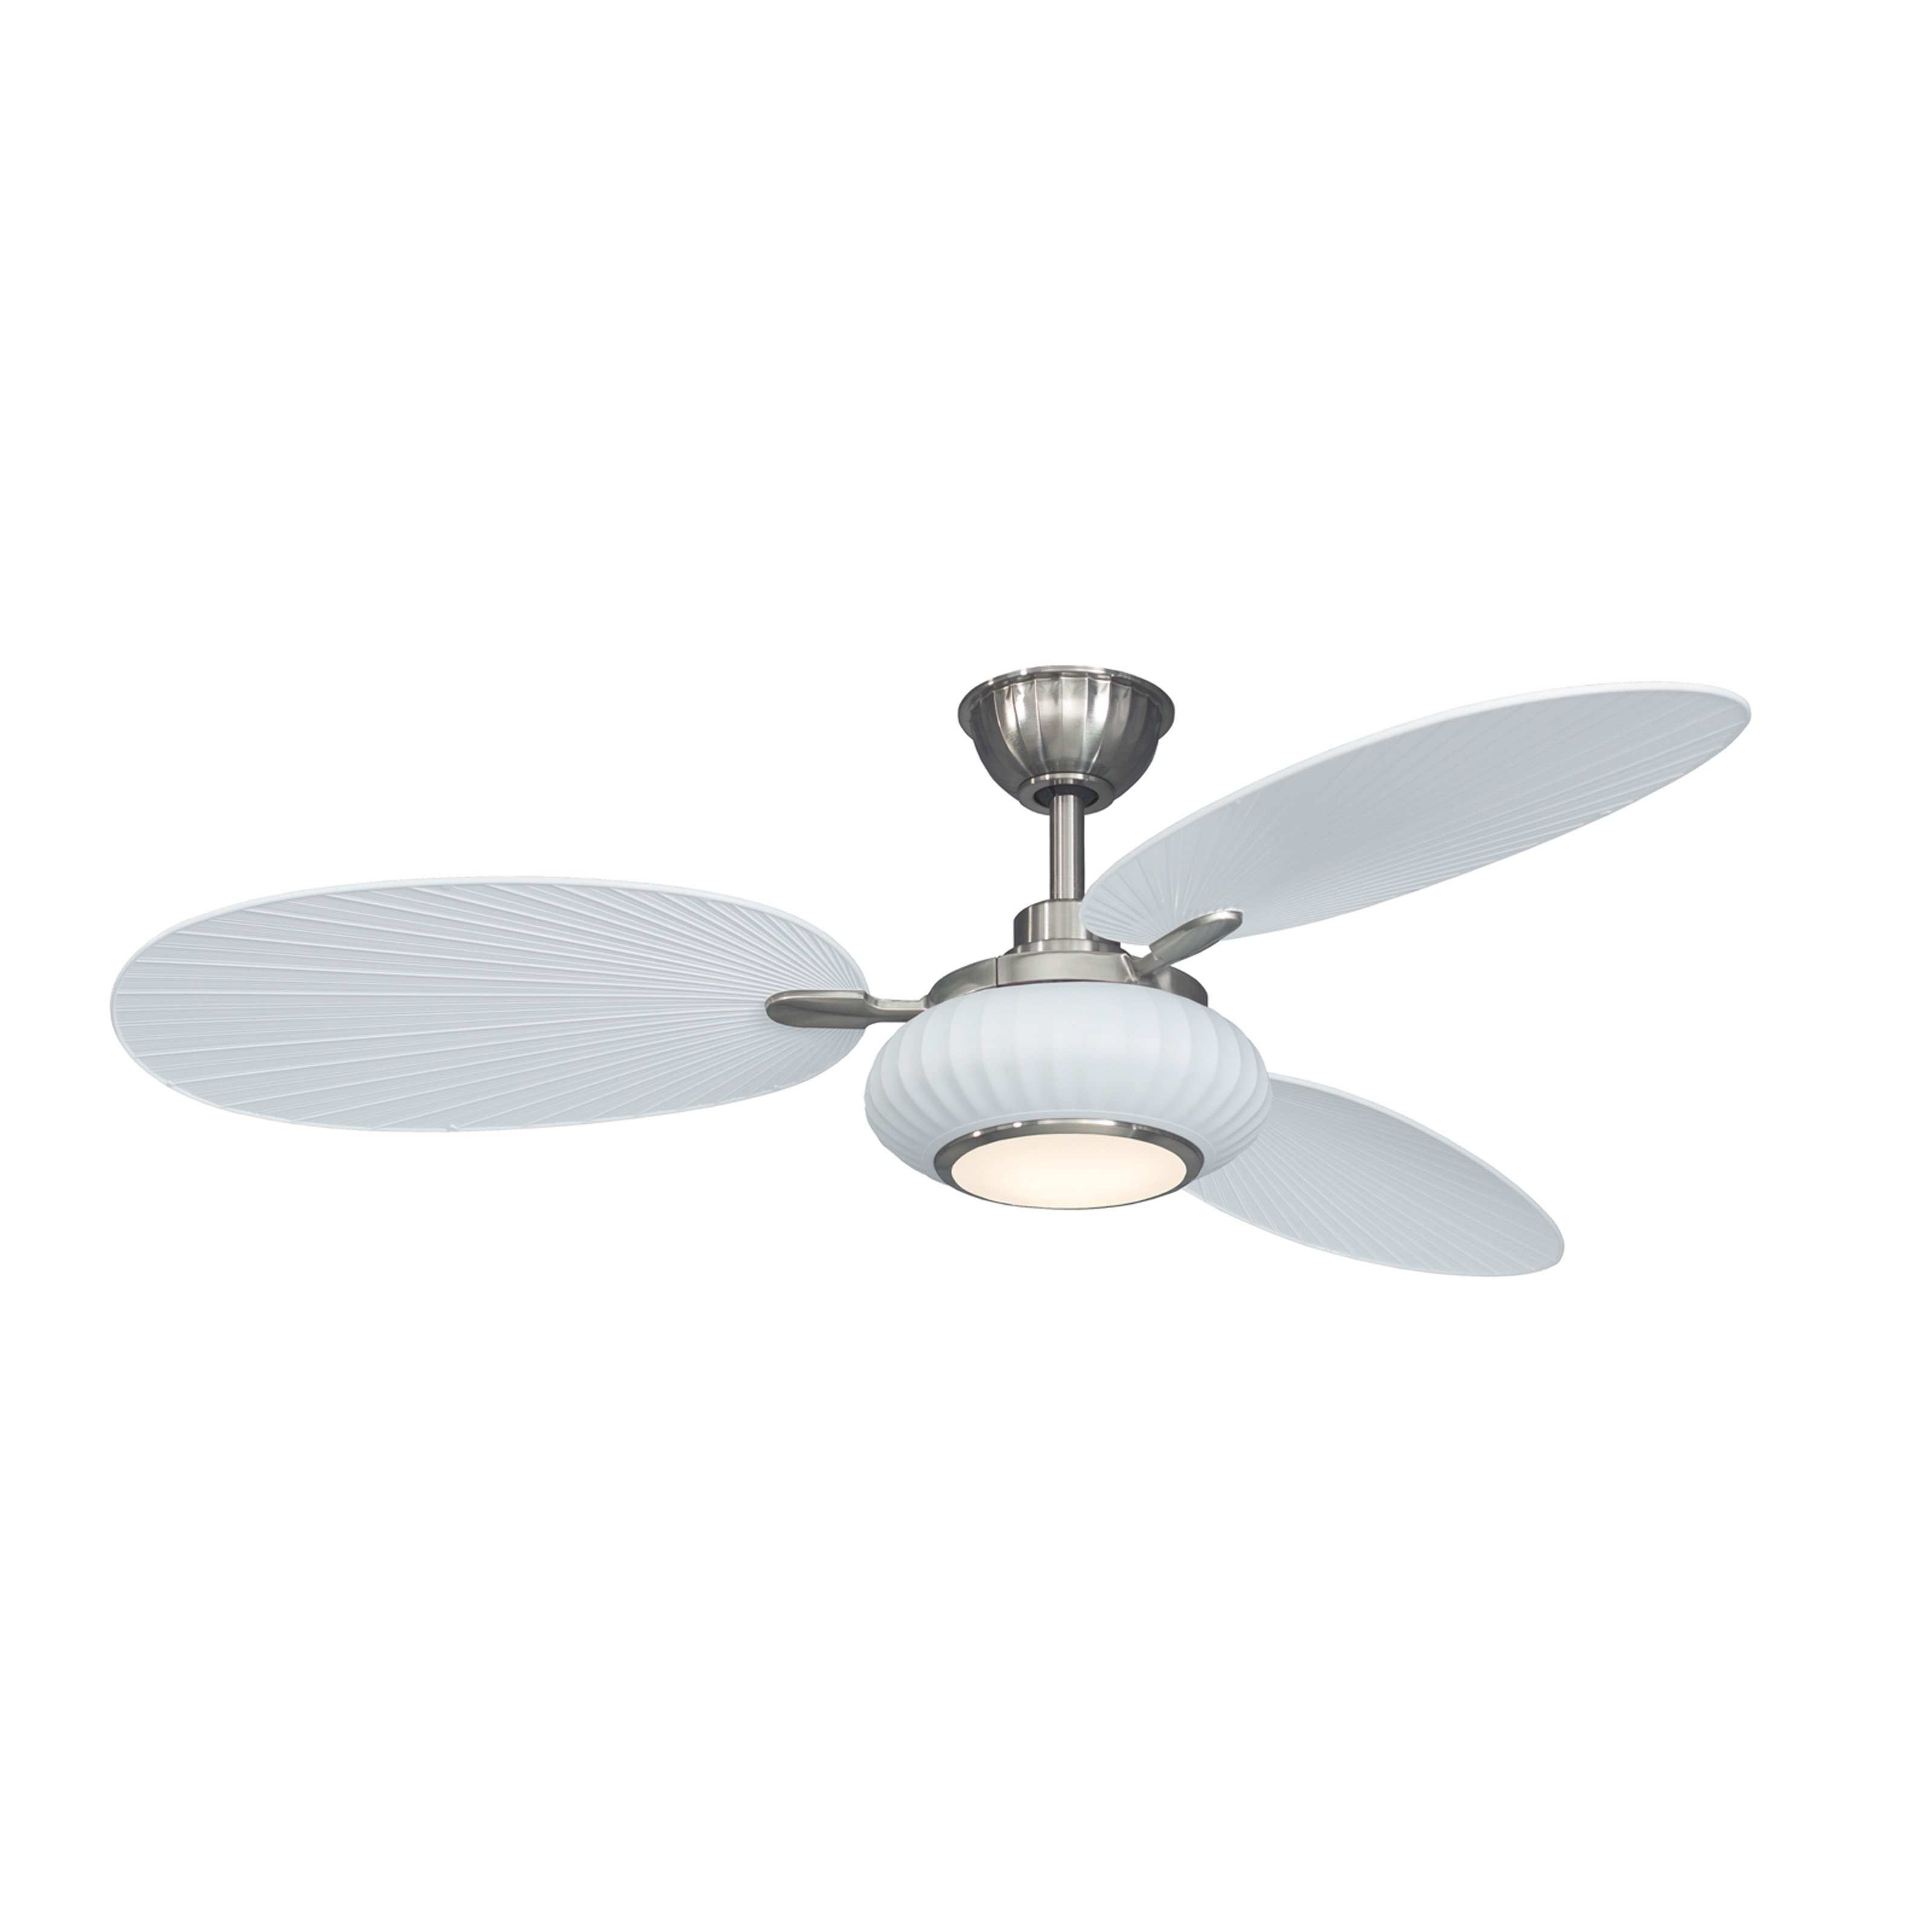 2018 24 Inch Ceiling Fan With Light Awesome Kichler Renew Patio 52 In In 24 Inch Outdoor Ceiling Fans With Light (View 1 of 20)